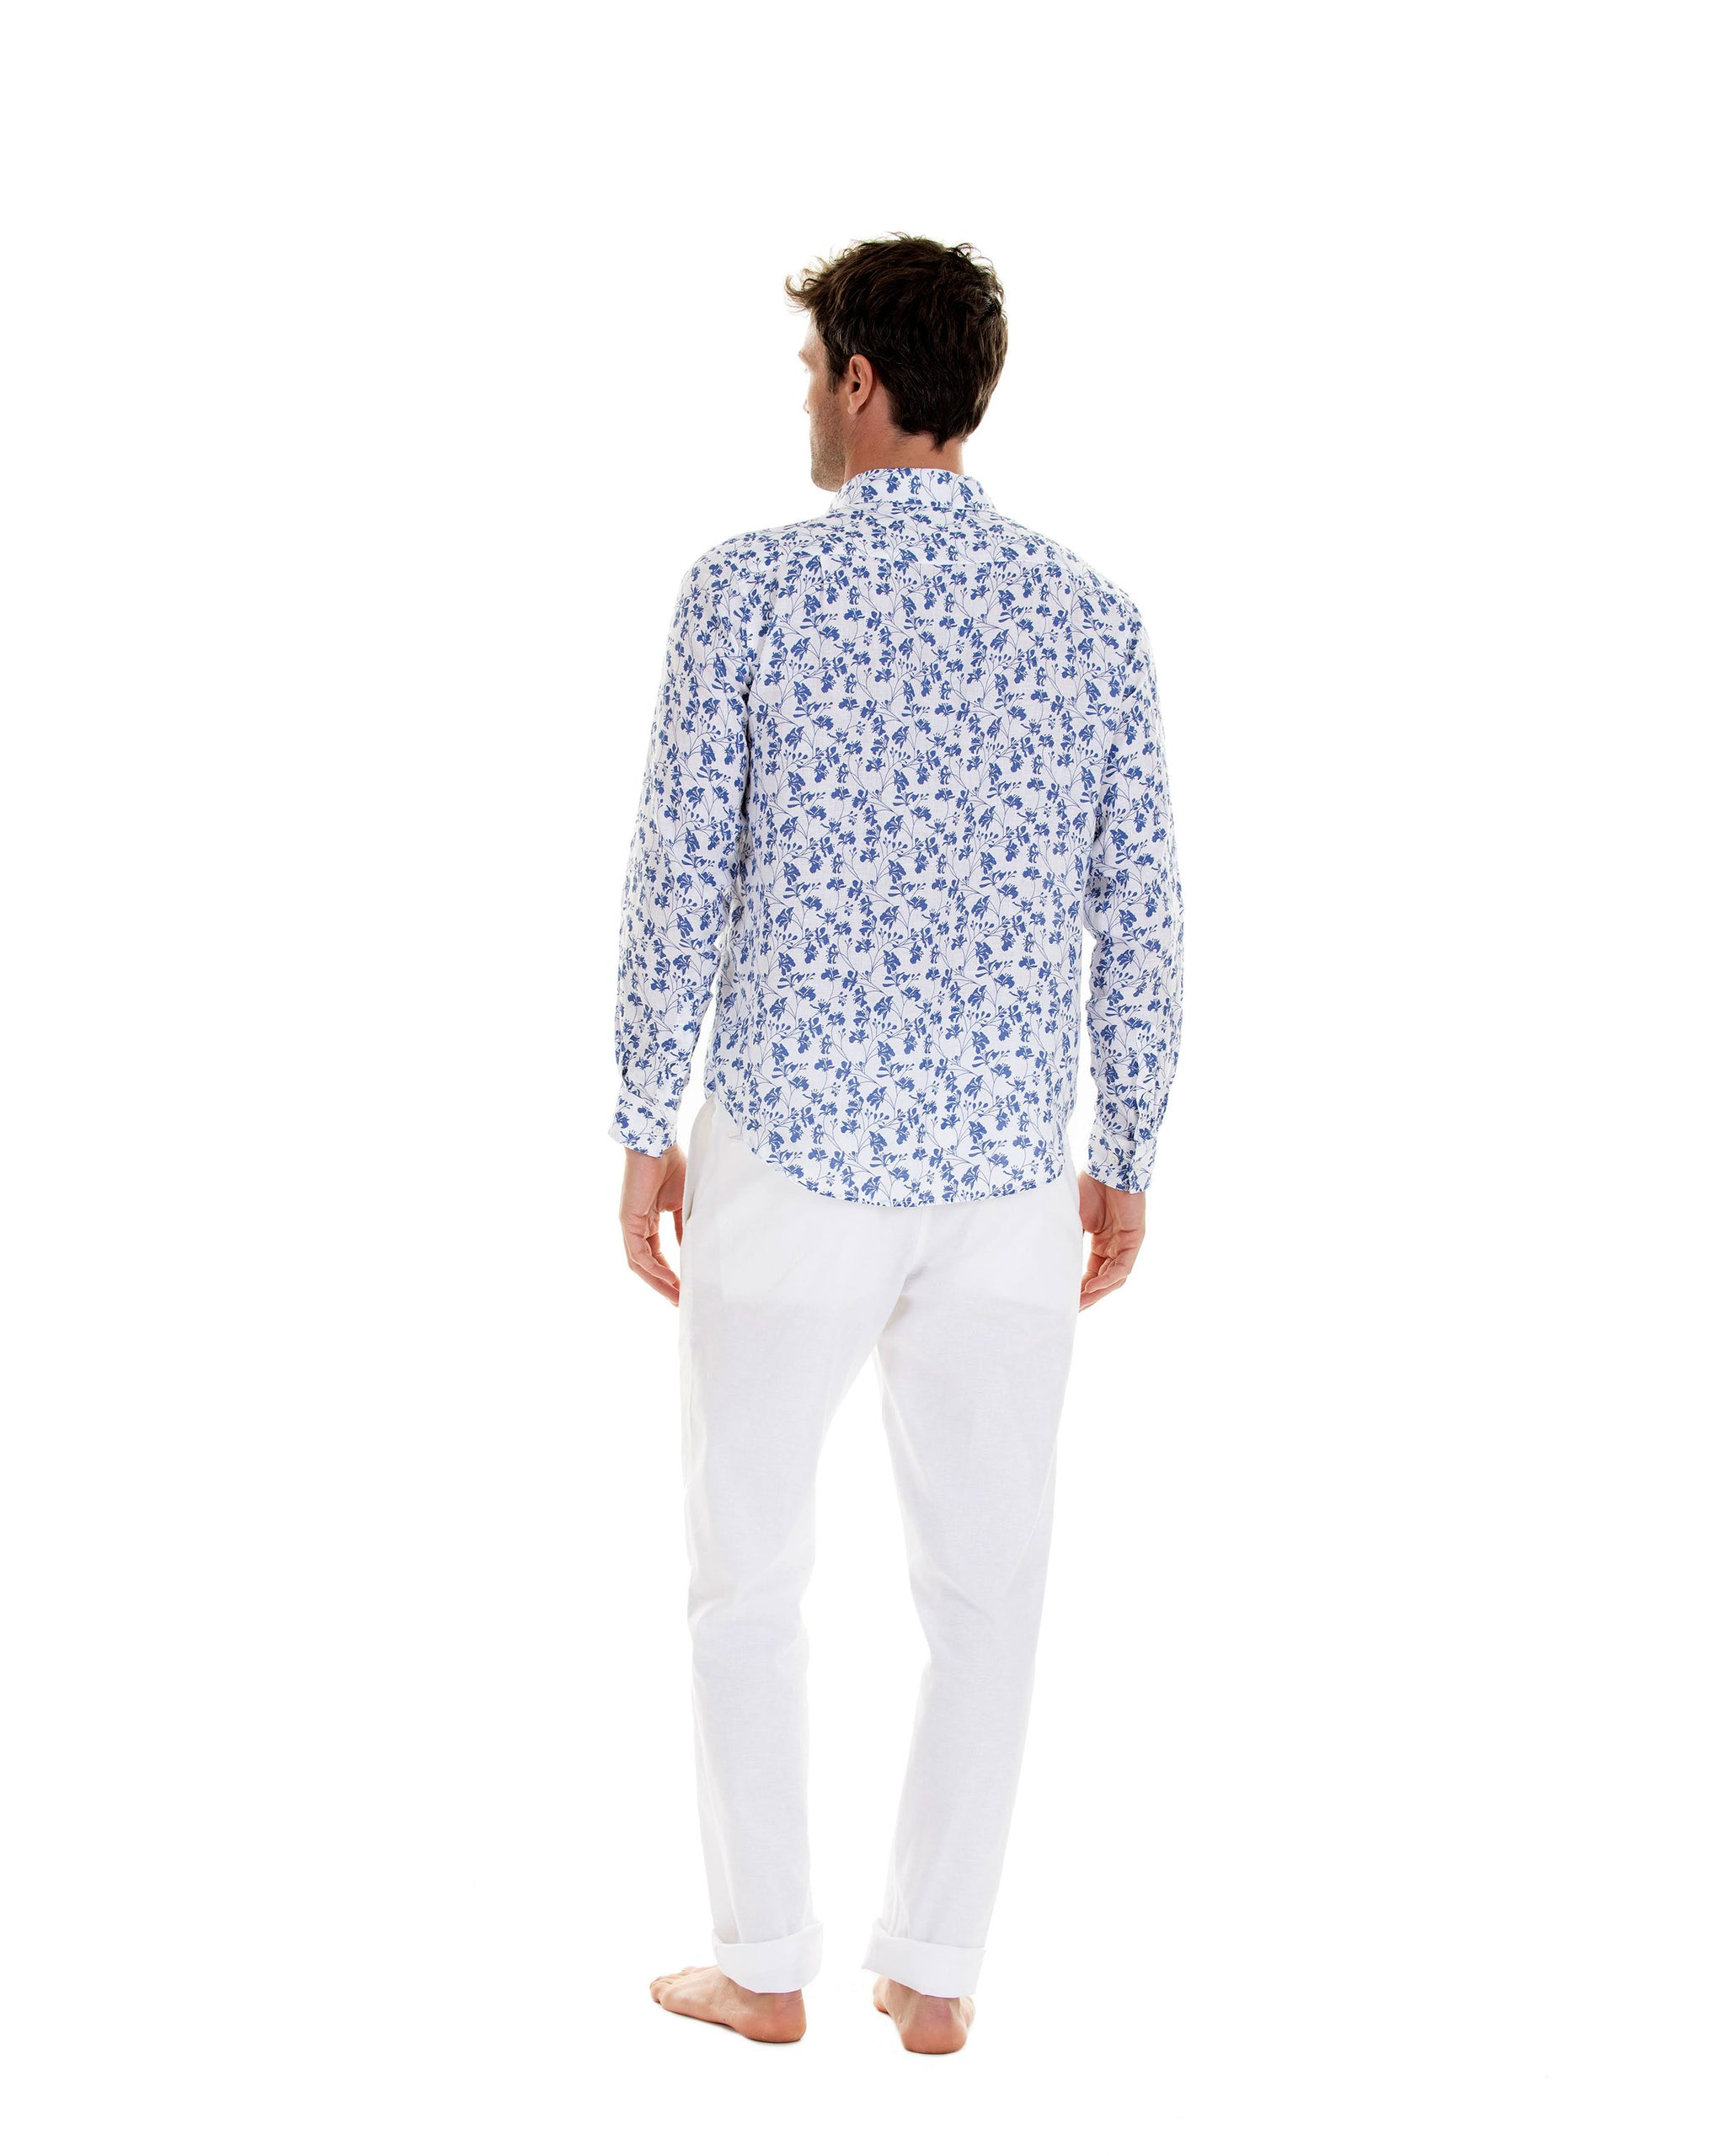 df4f57e34078 Mens Linen Shirt : FLAMBOYANT - NAVY BLUE designer menswear by Lotty B  Mustique summer style